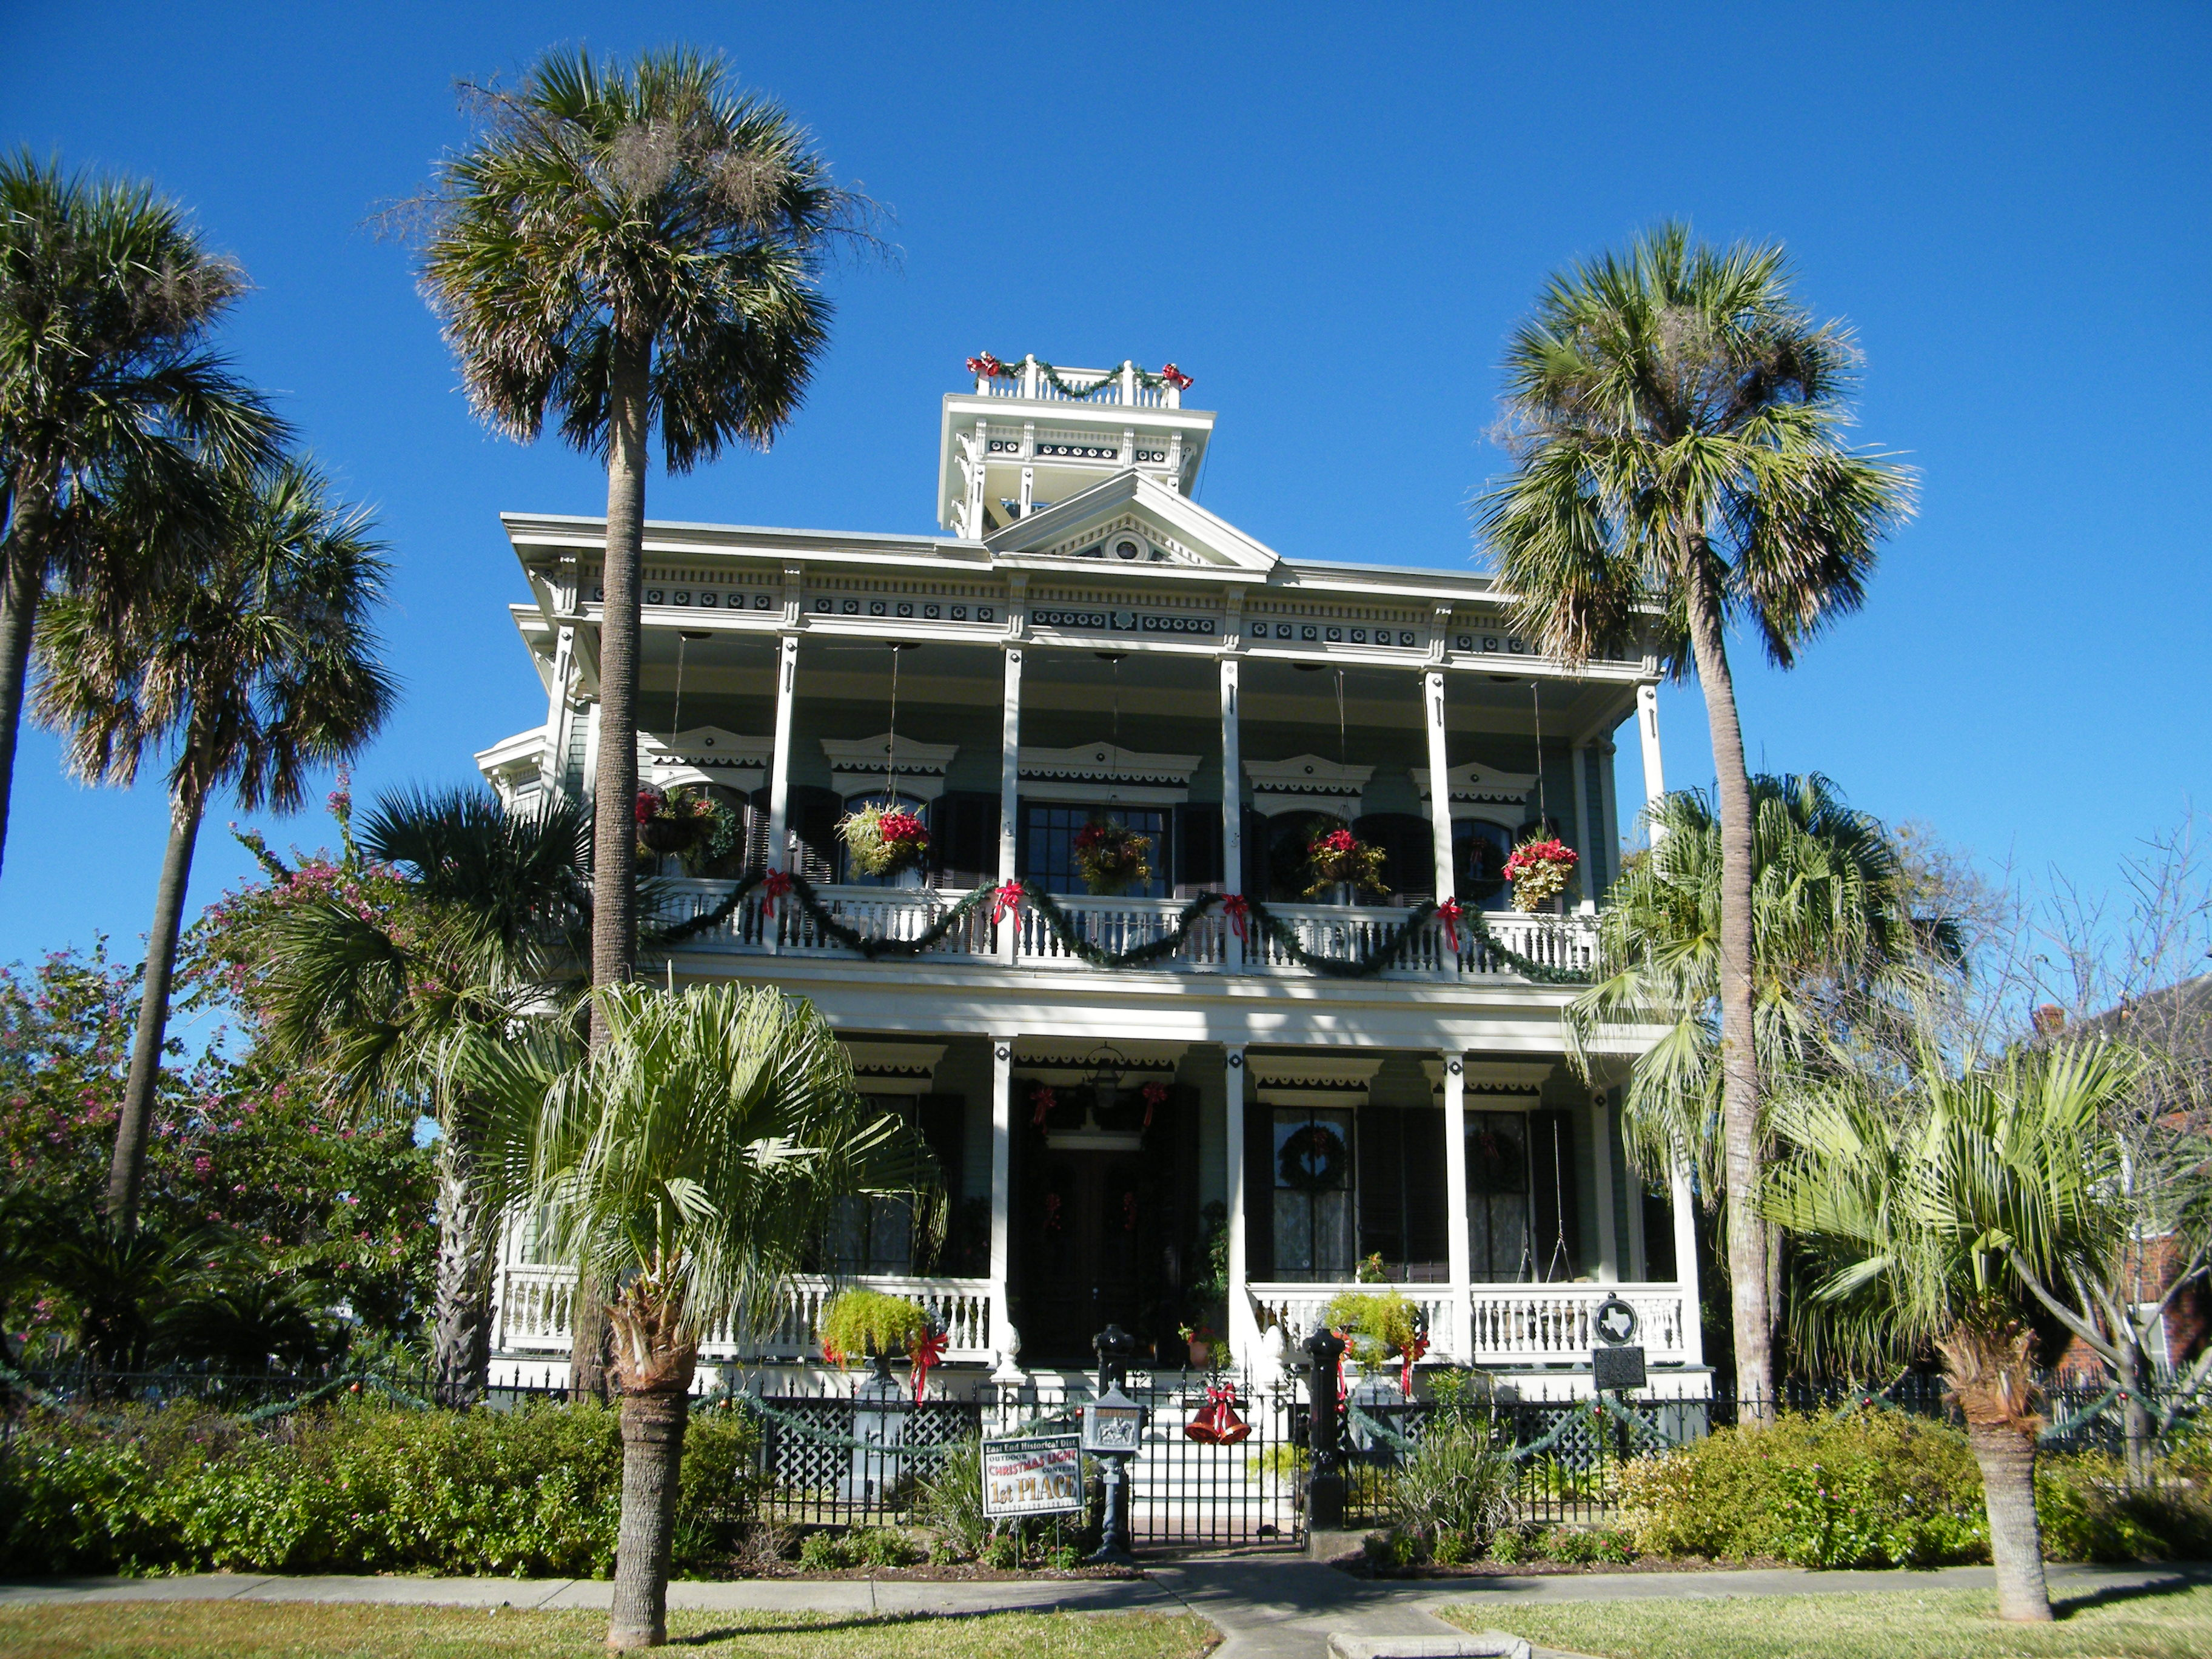 Beautifully Decorated Homes For Christmas Touring The Island The Meandering Mainiacs